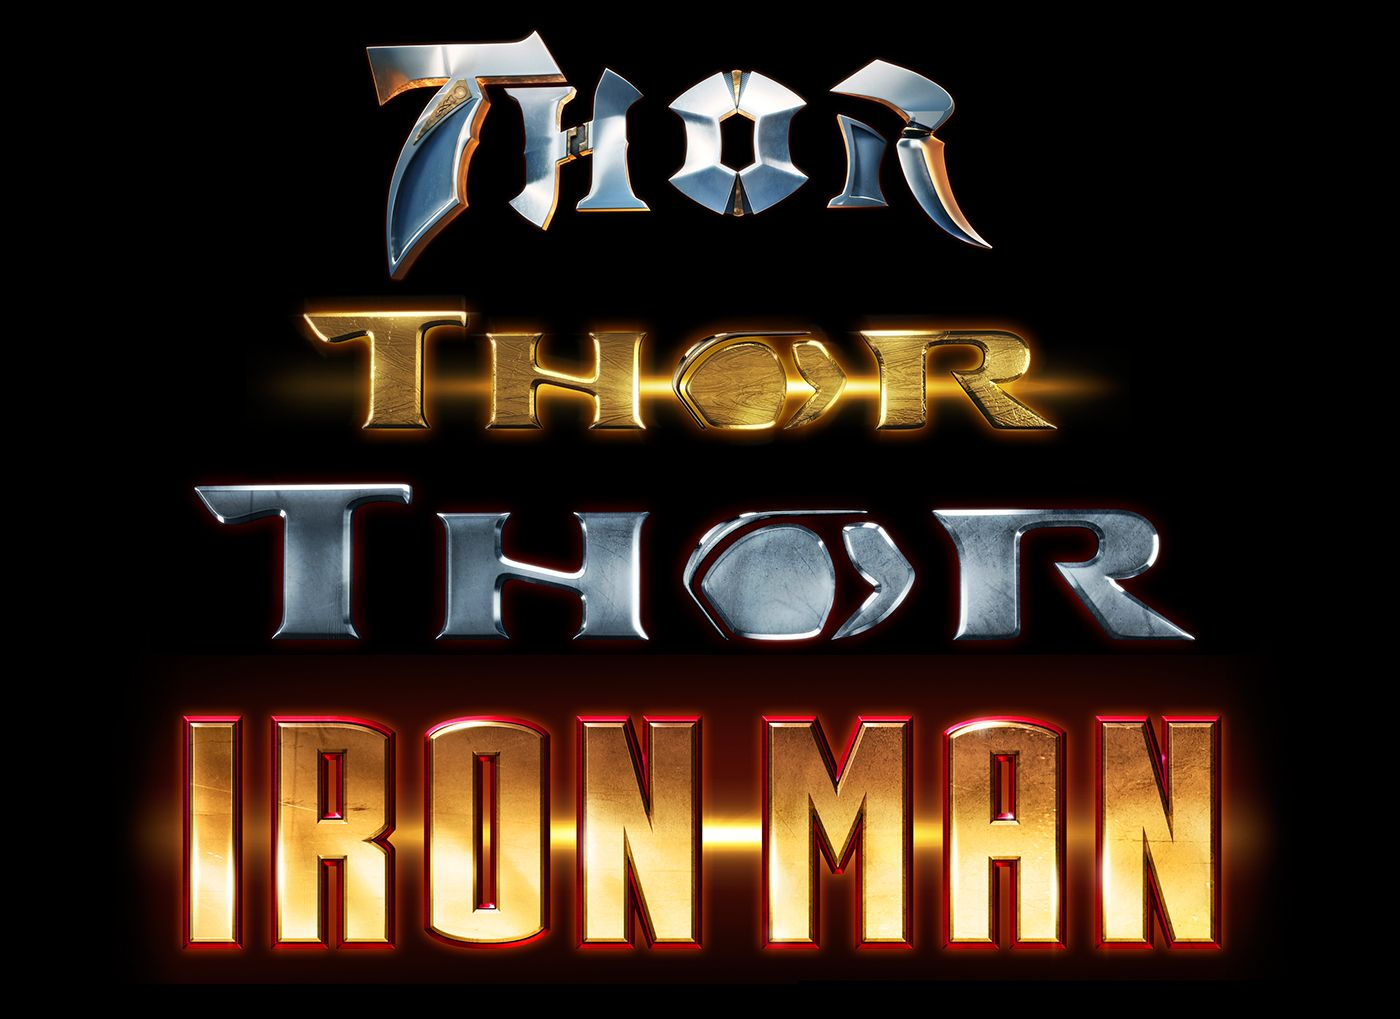 Thor and Iron Man on Behance